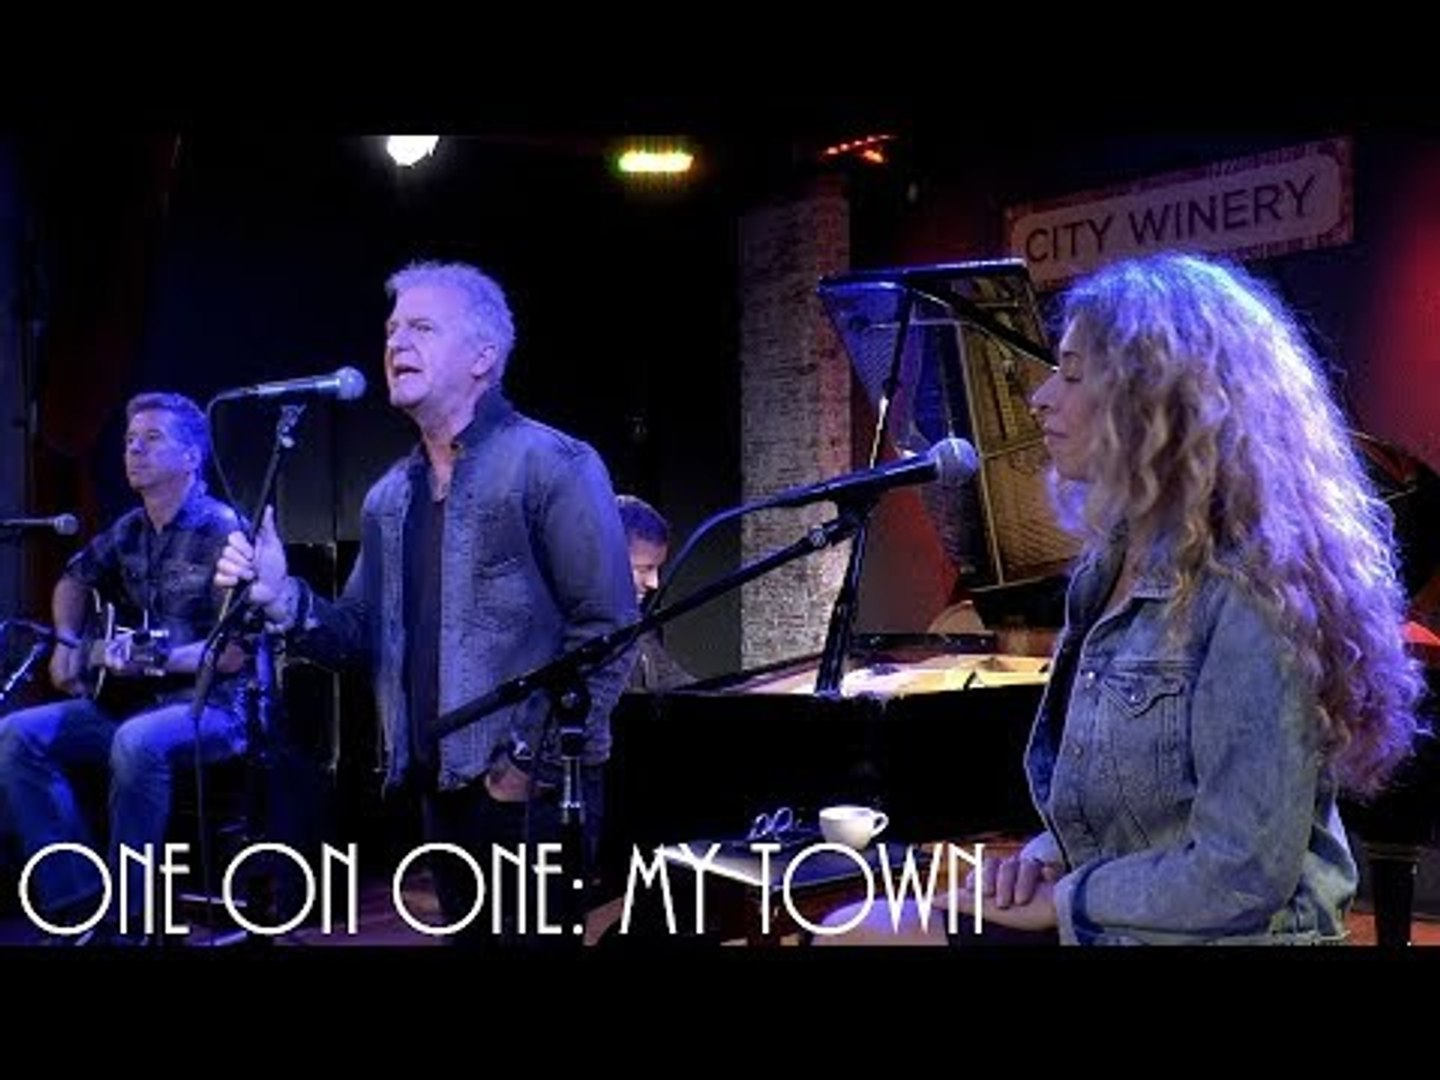 Cellar Sessions: Glass Tiger - My Town August 31st, 2018 City Winery New York